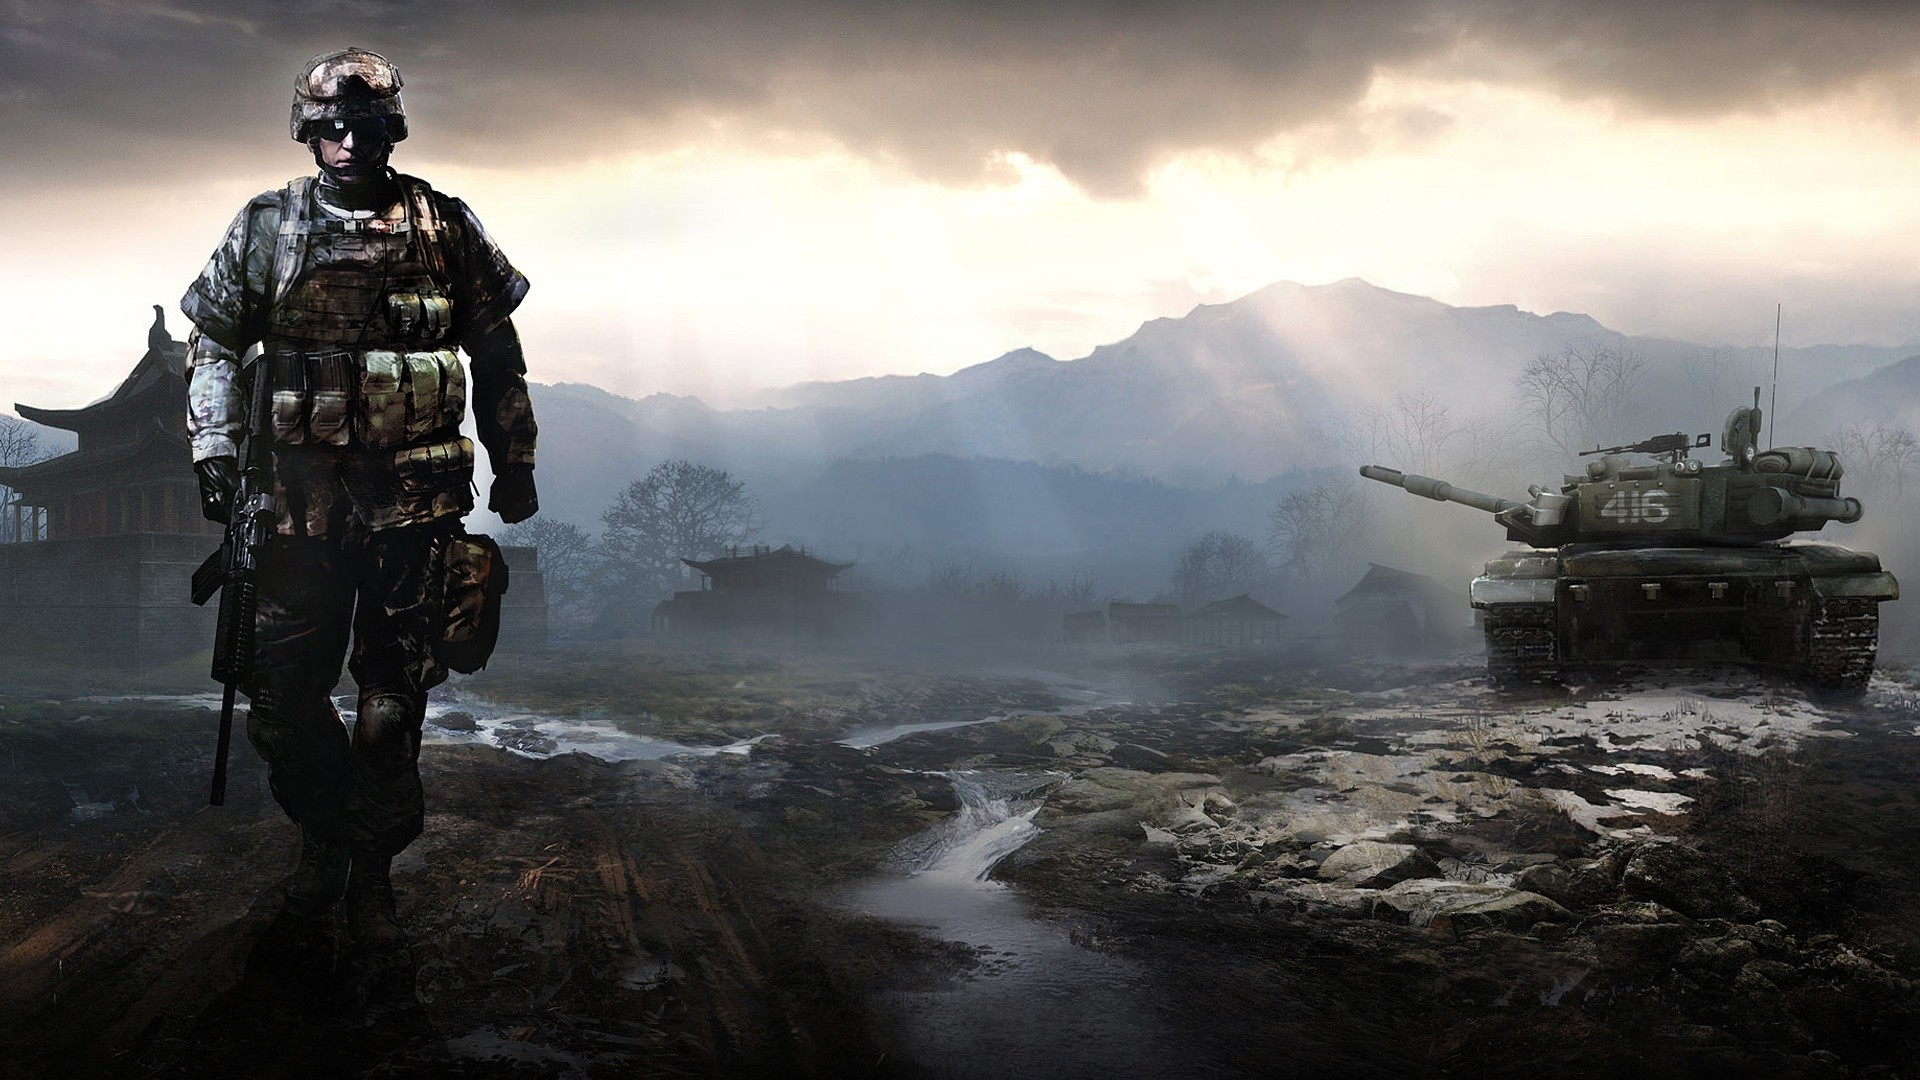 1920x1080 Battlefield background Battlefield bac Real battlefield Image. Real  Battlefiel.